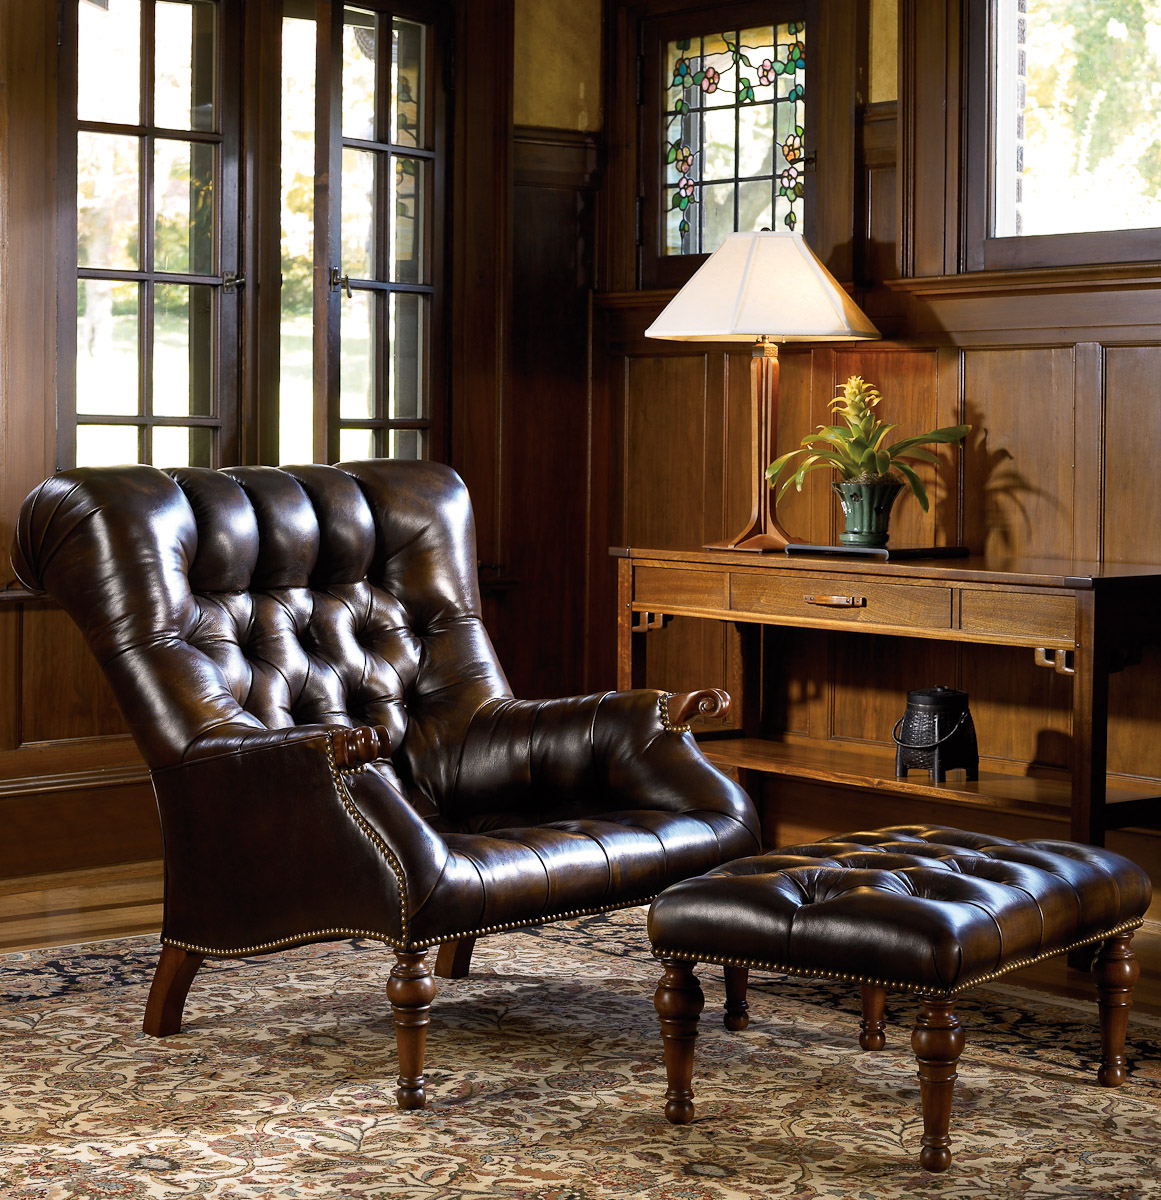 Living room leather furniture - Leather furniture for small living room ...